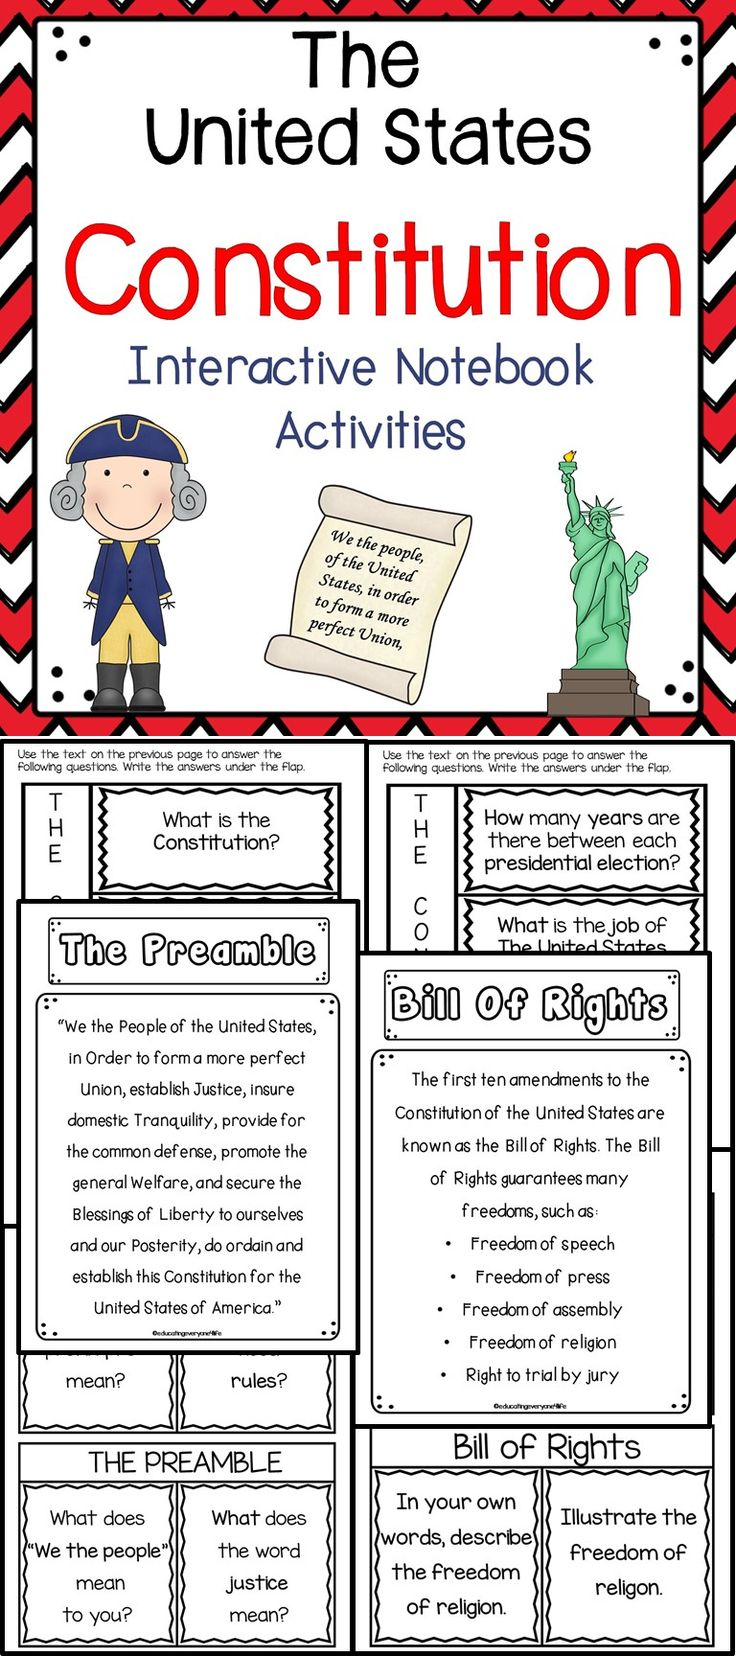 Facts about the United States Constitution